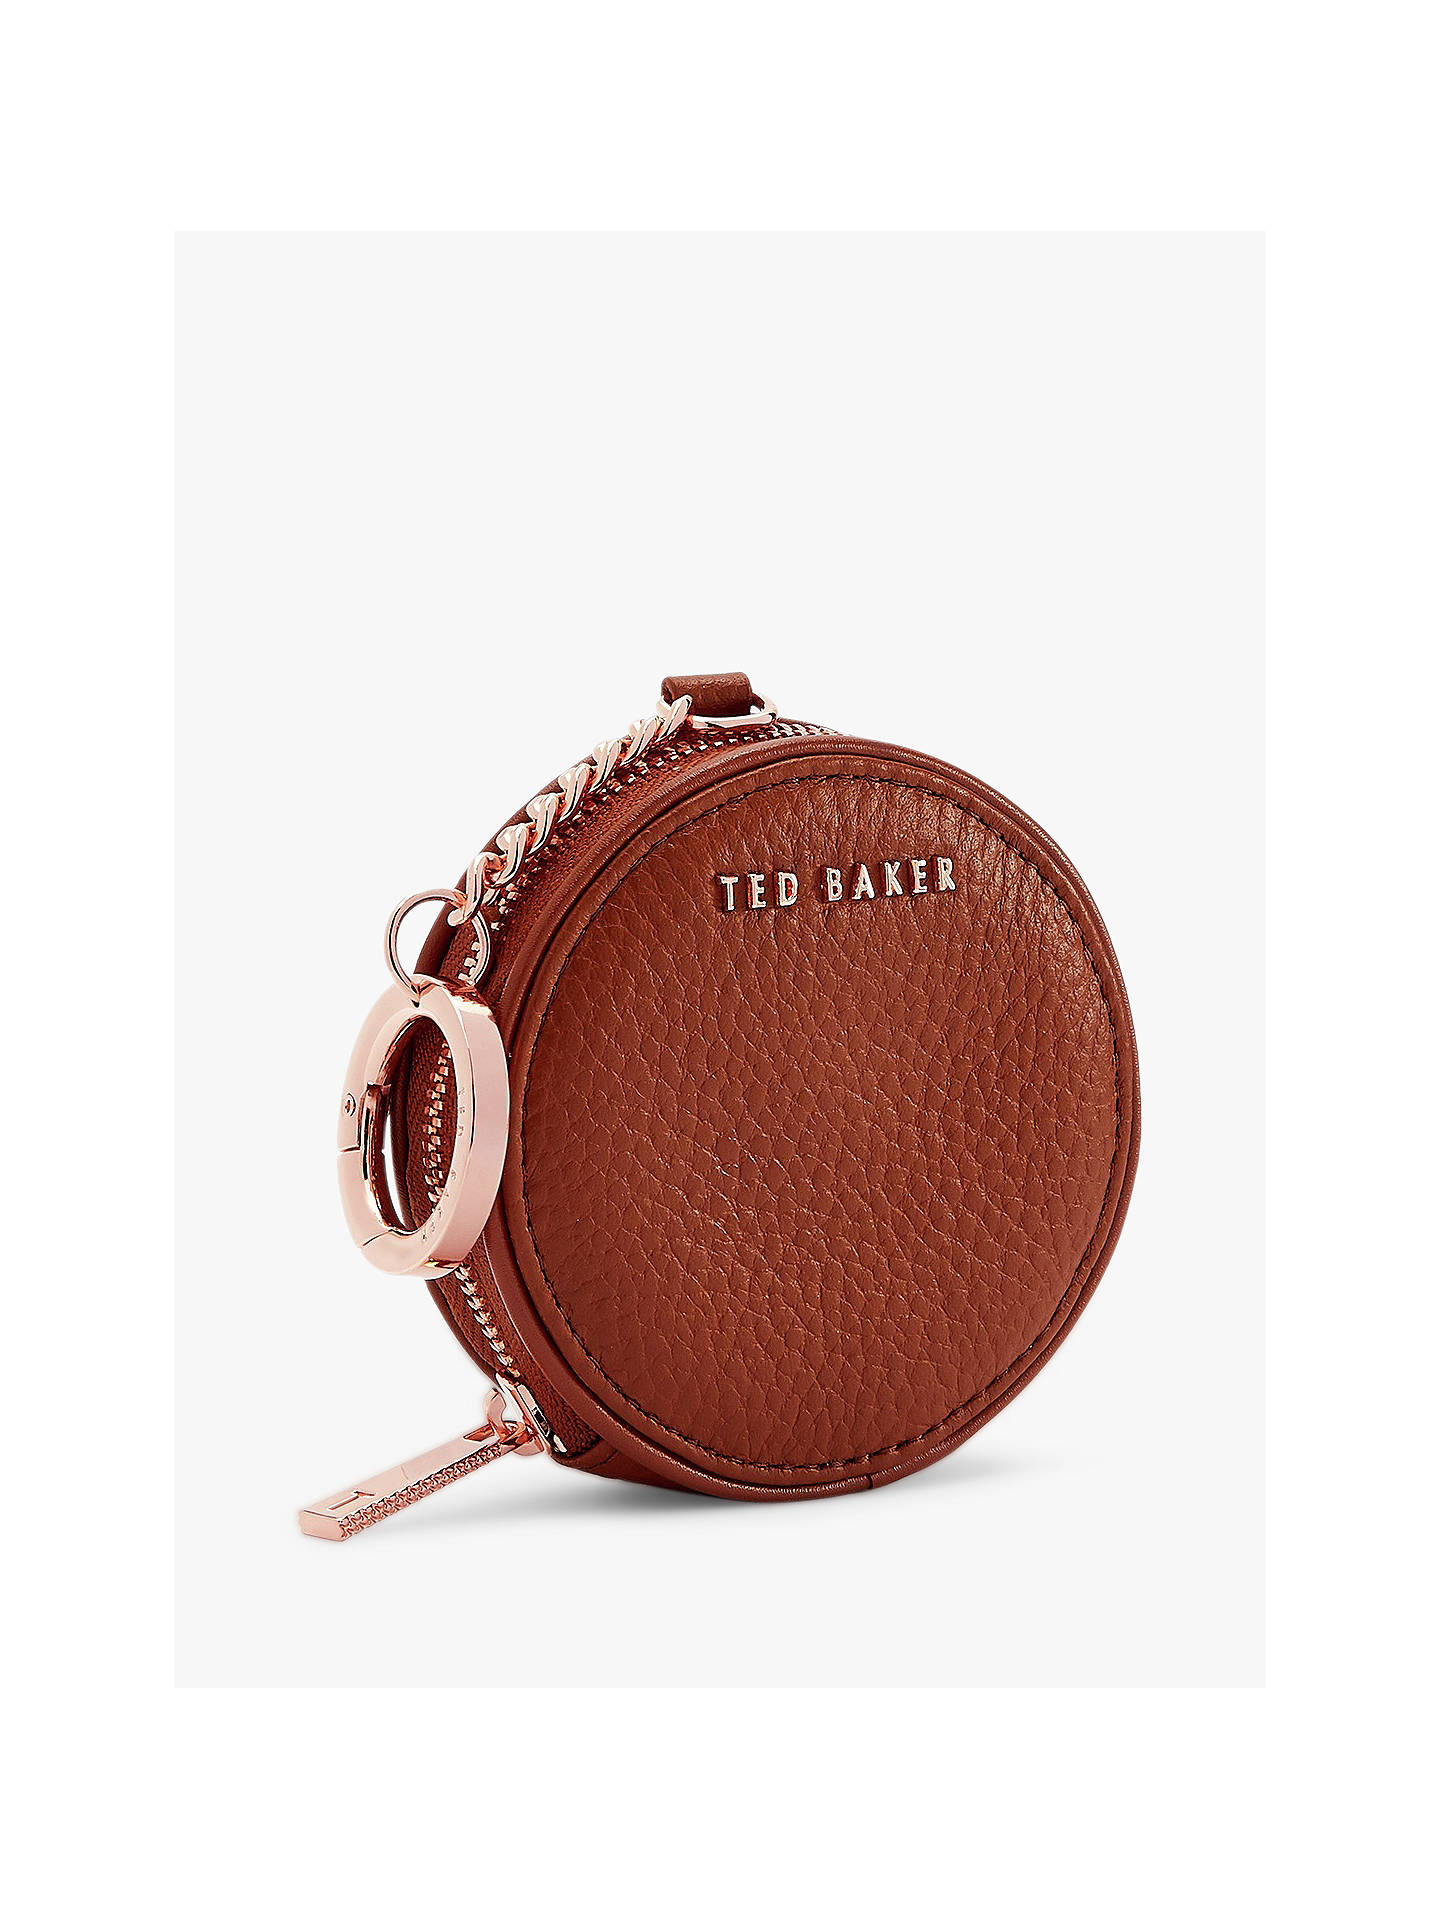 56a31e59c Ted Baker Marlida Leather Coin Purse Keyring at John Lewis   Partners